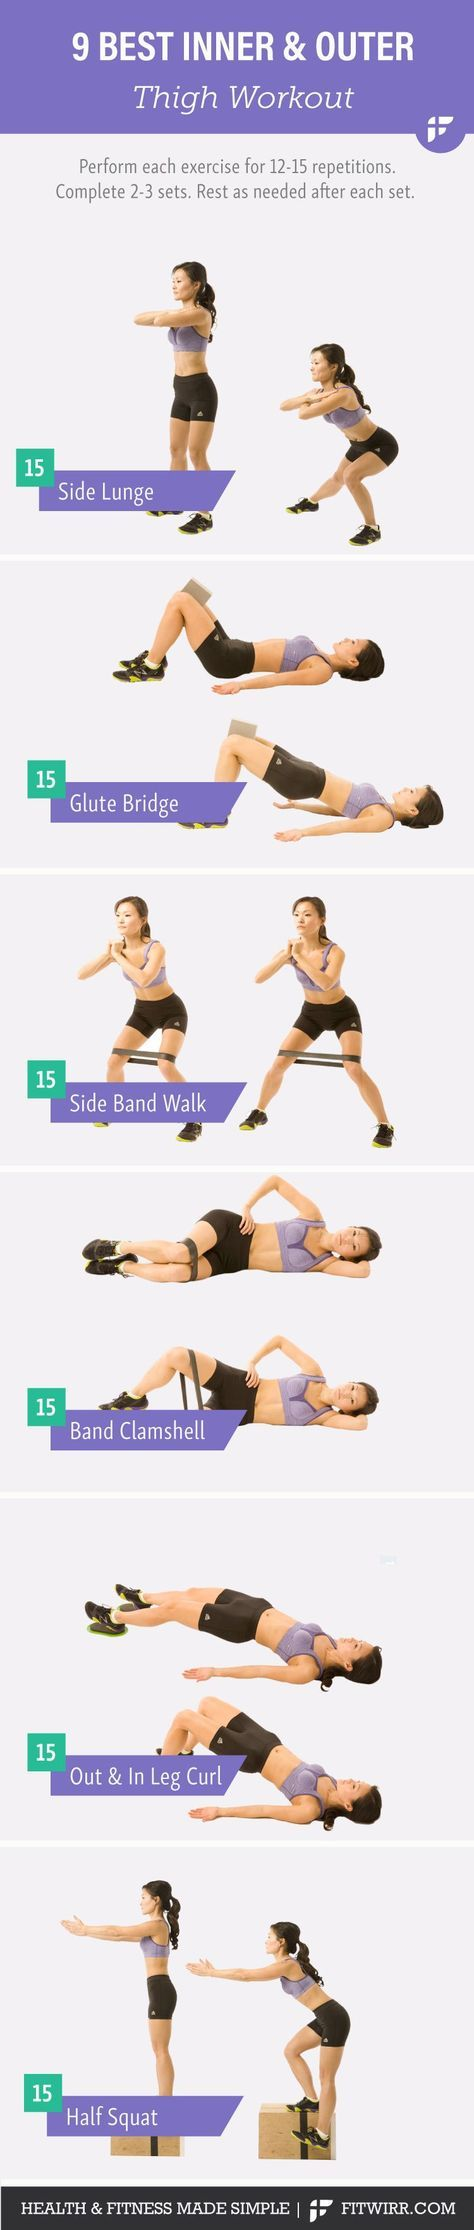 Inner and outer thigh workout. #innerthighexericises #exercise | Posted By: NewHowToLoseBellyFat.com